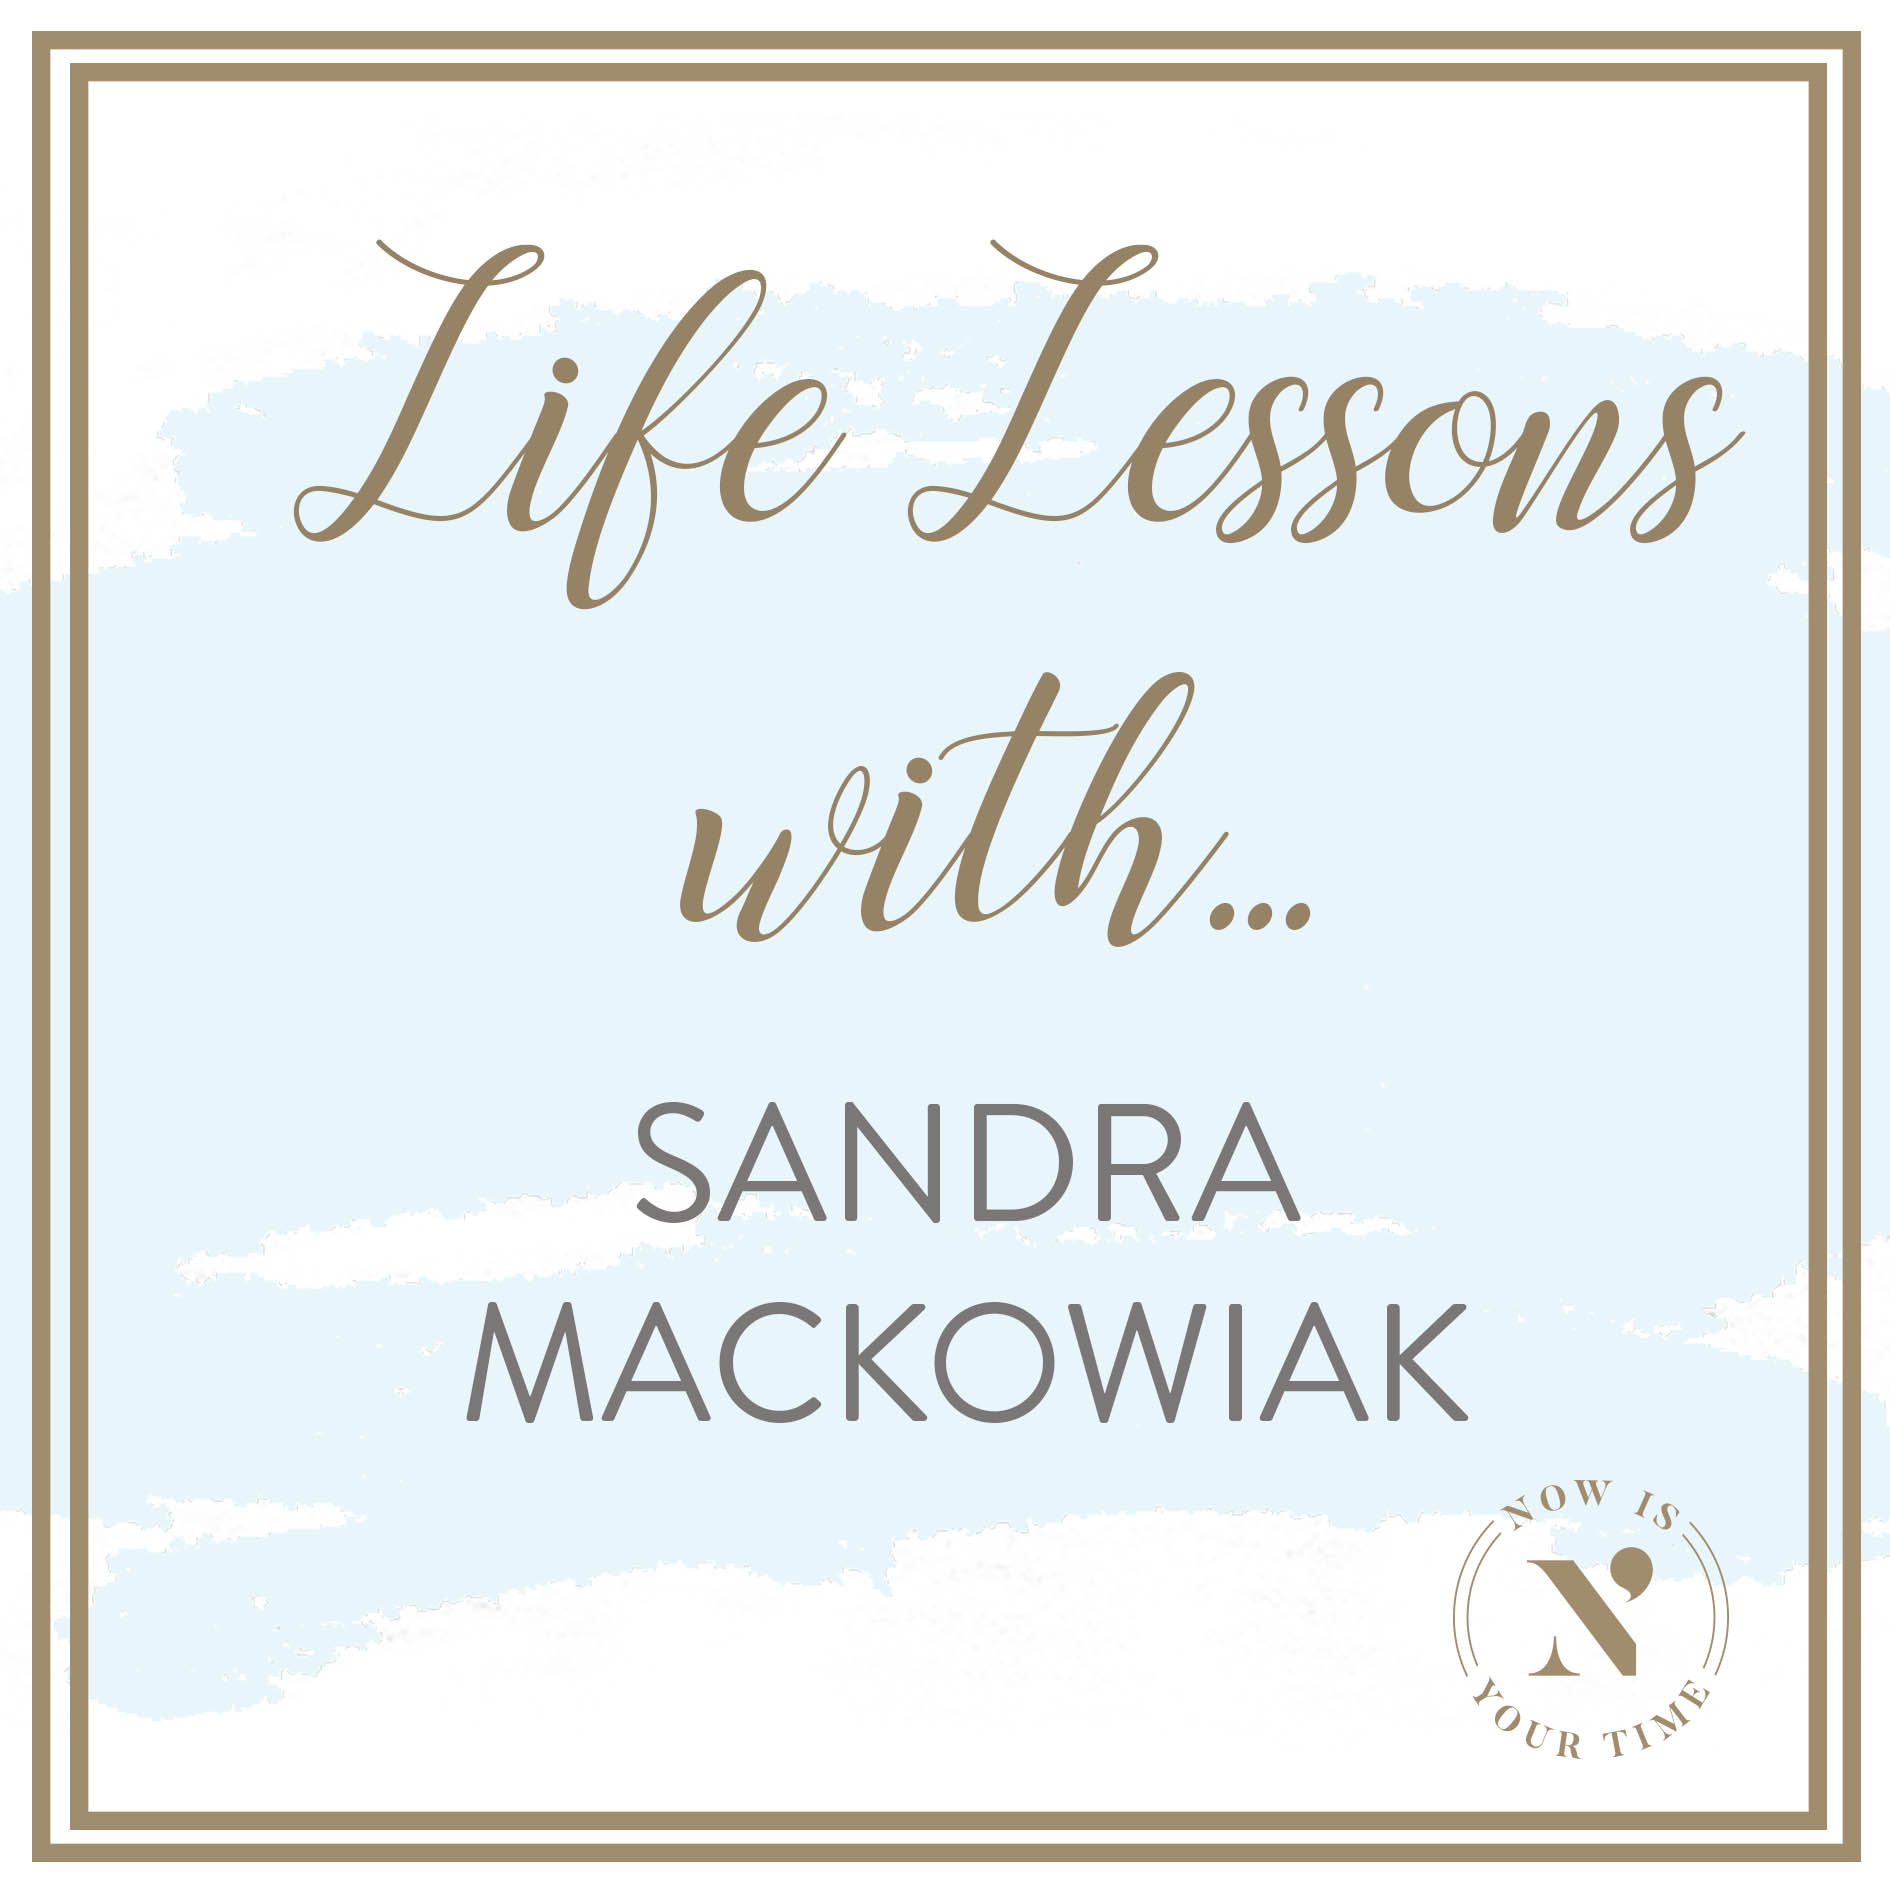 Life Lessons with podcast artwork - episode 7 - Sandra Mackowiak.jpg